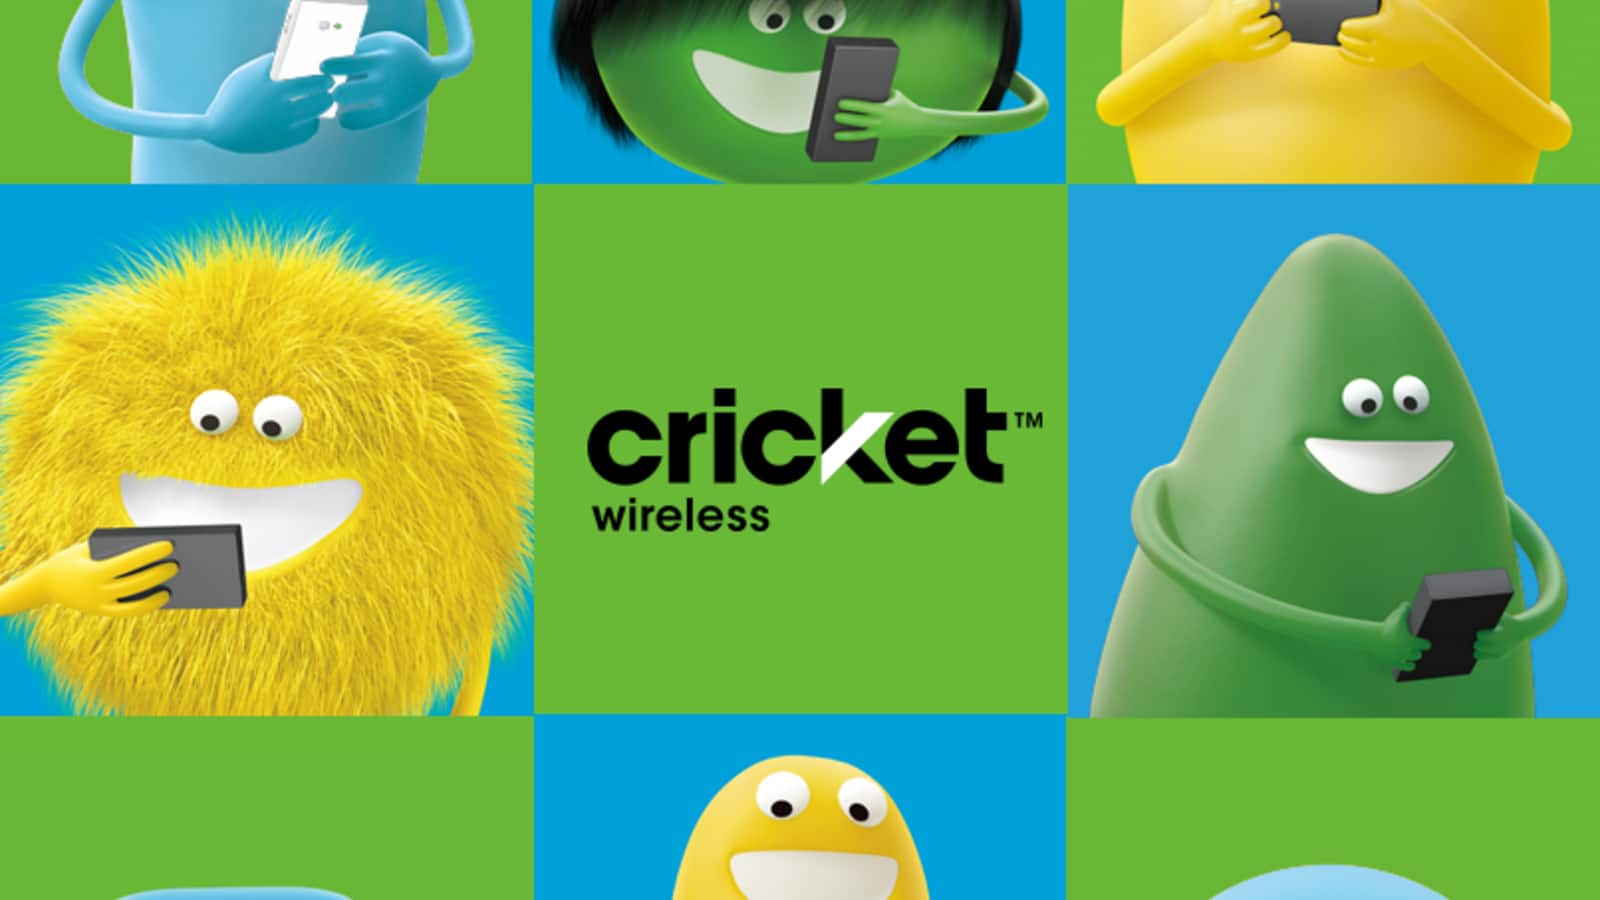 Cricket Wireless: Up to $135 in switch credits ($50 port-in, $50 T-Mobile, $35 BYOD)